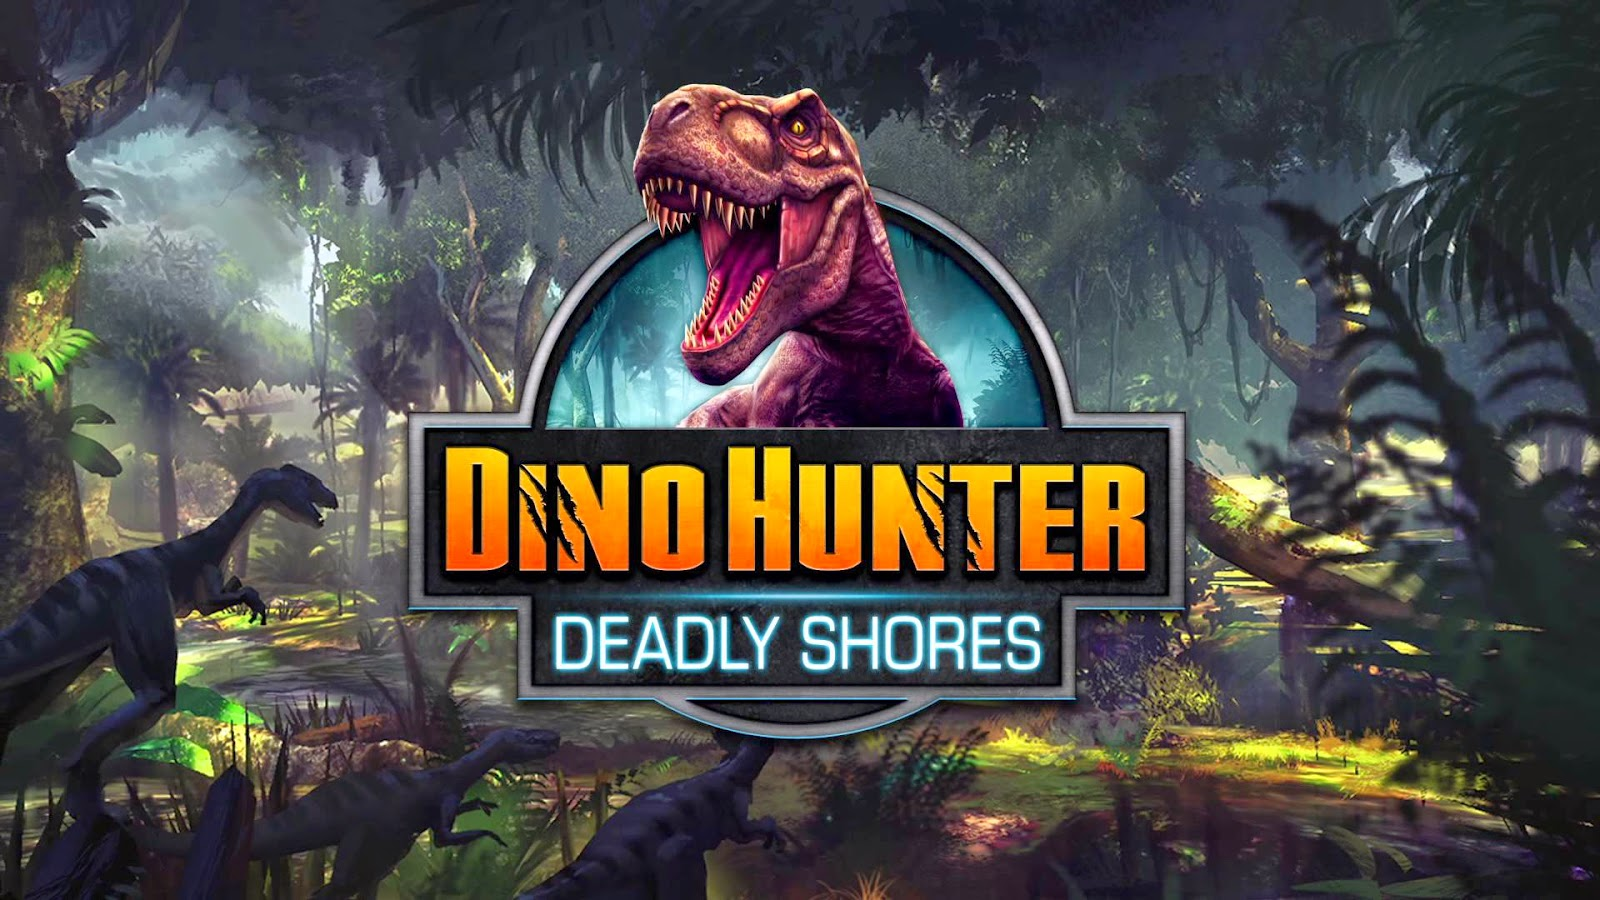 Dino Hunter: Deadly Shores 1.0.0 Apk Download